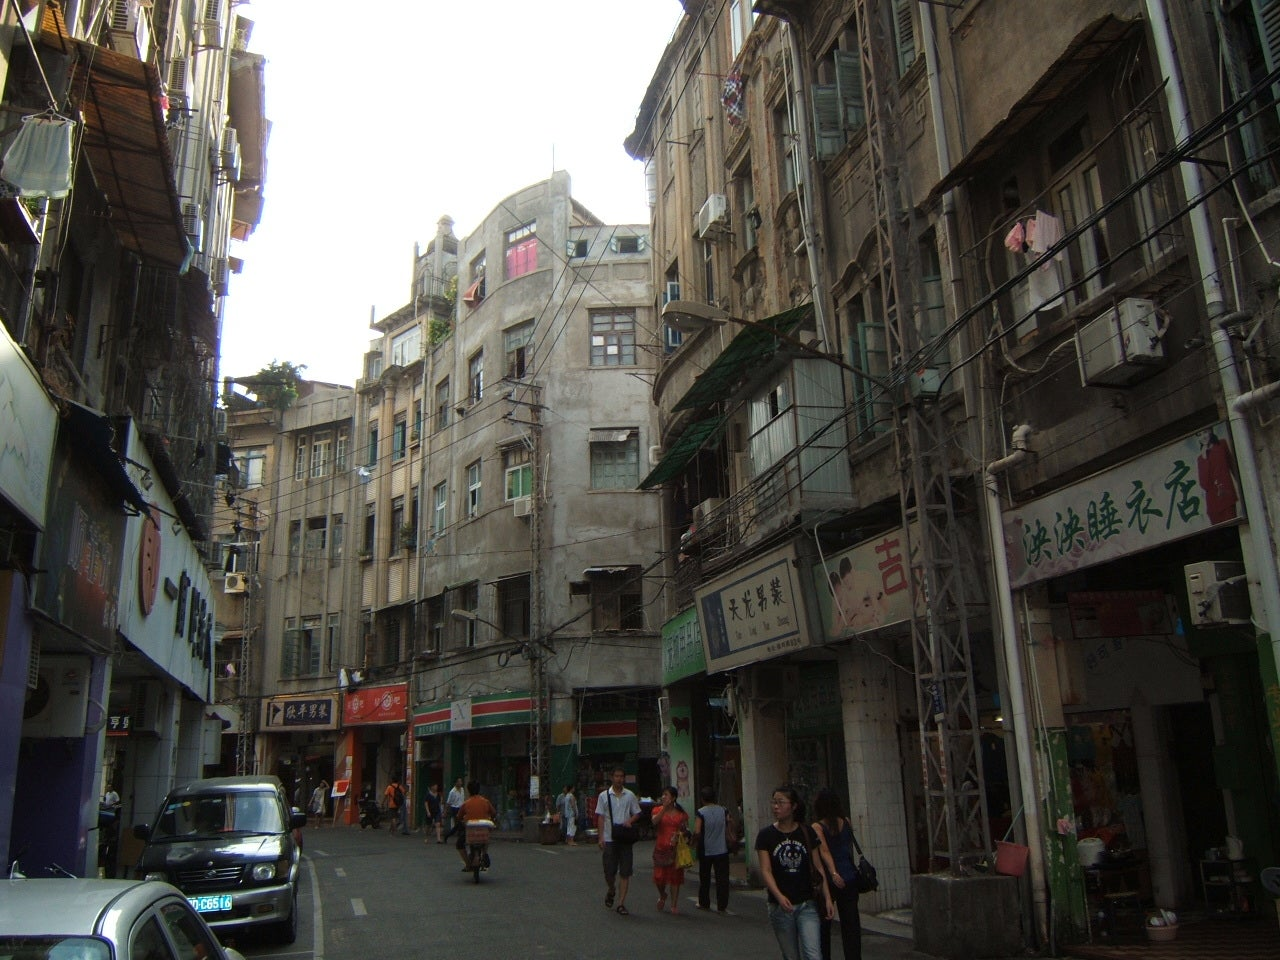 Old town and Park of Xiamen